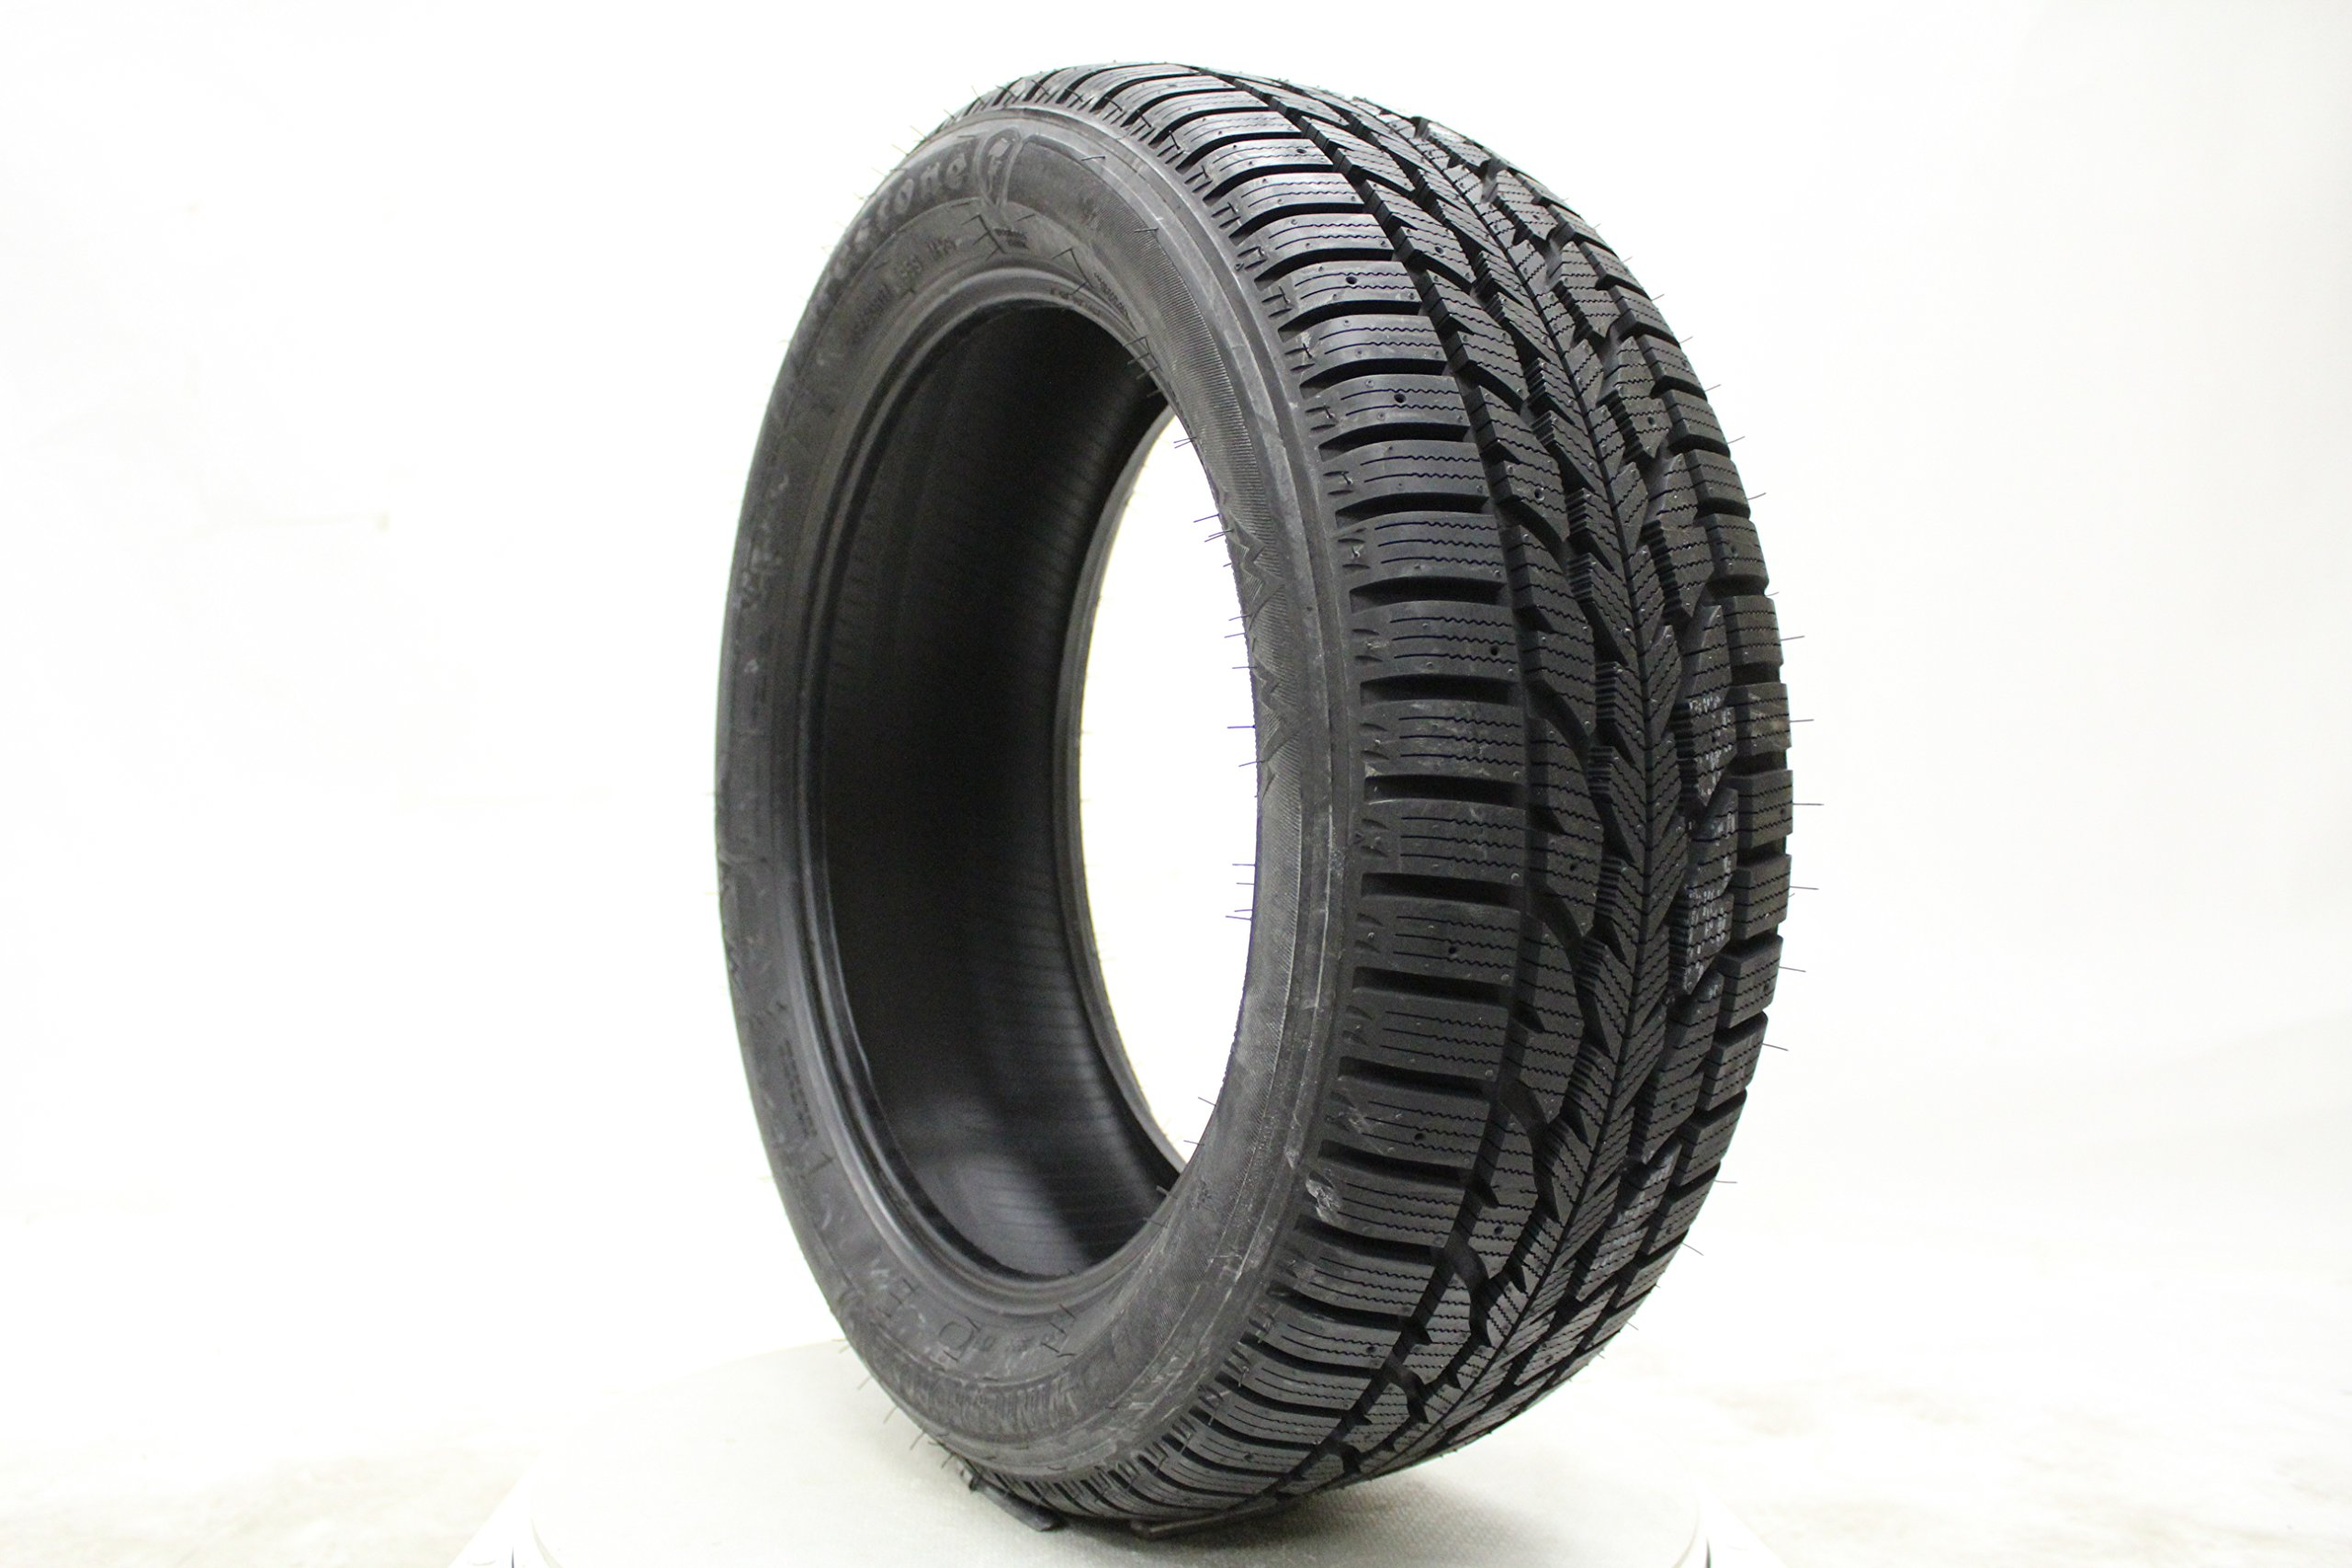 Firestone Winterforce 2 Studable-Winter Radial Tire - 205/60R16 92S